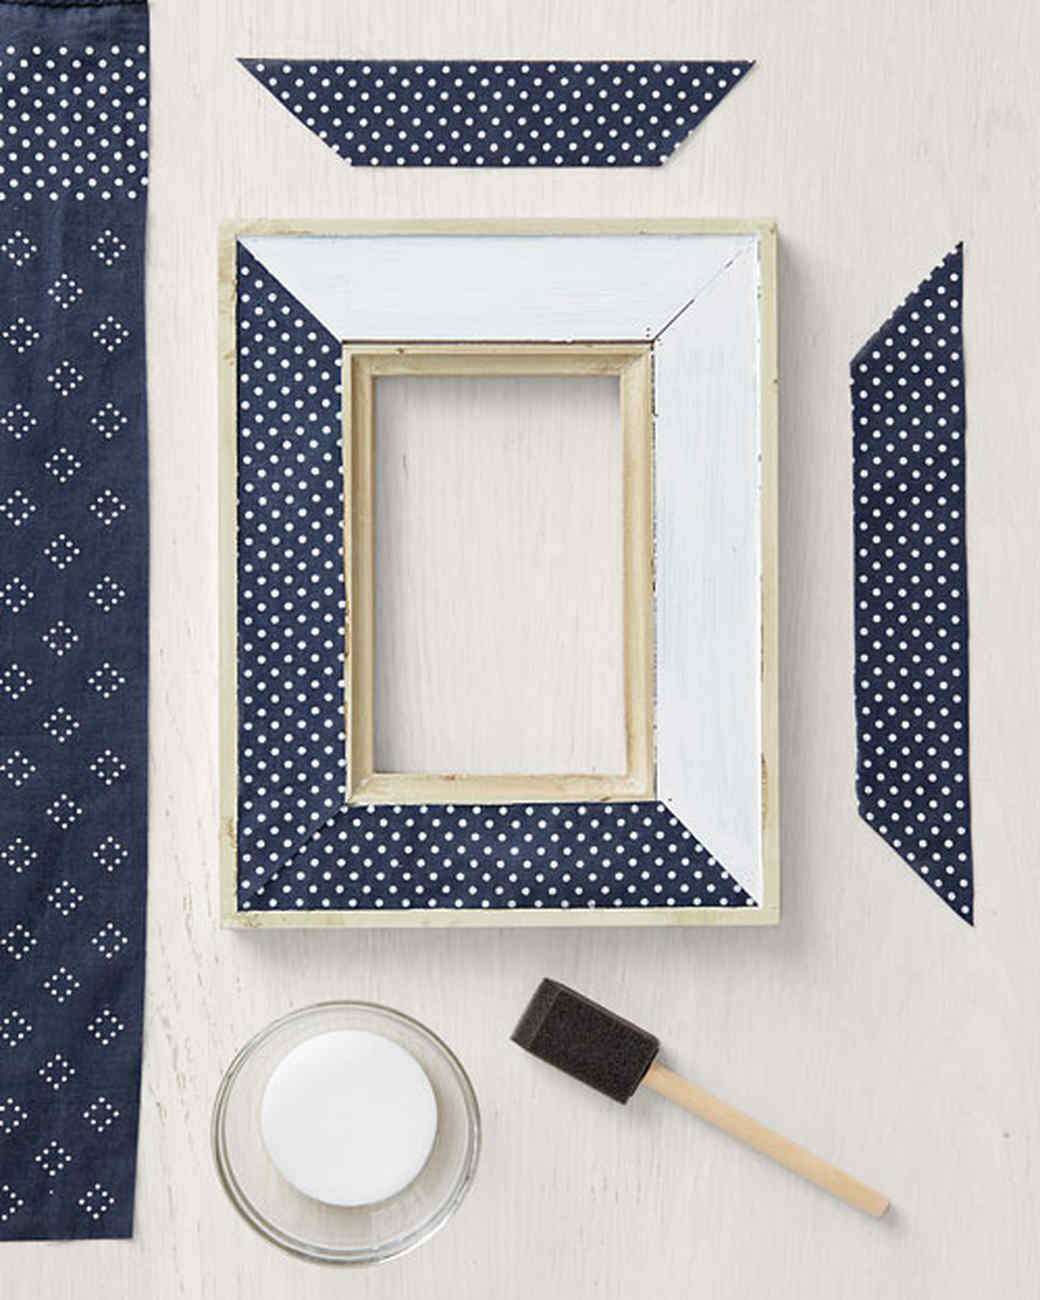 Bandanna picture or mirror frame martha stewart this is essentially a decoupage project only youre gluing down fabric instead of paper jeuxipadfo Image collections